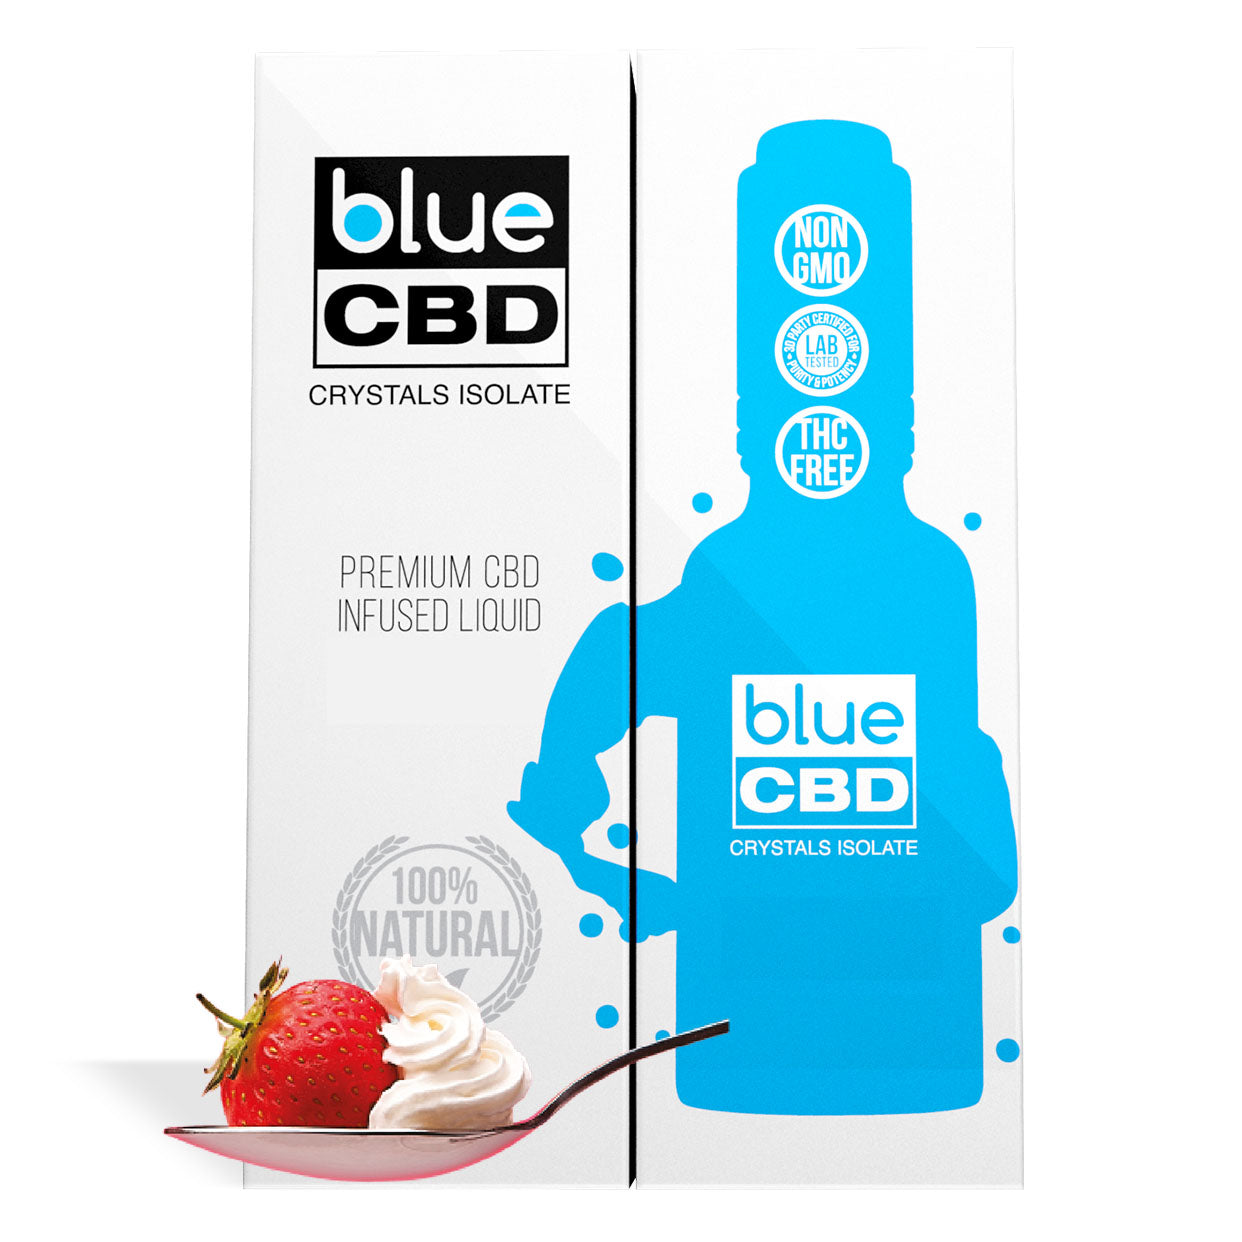 Strawberry and Creme Flavor Blue CBD Crystal Isolate - My CBD Mall